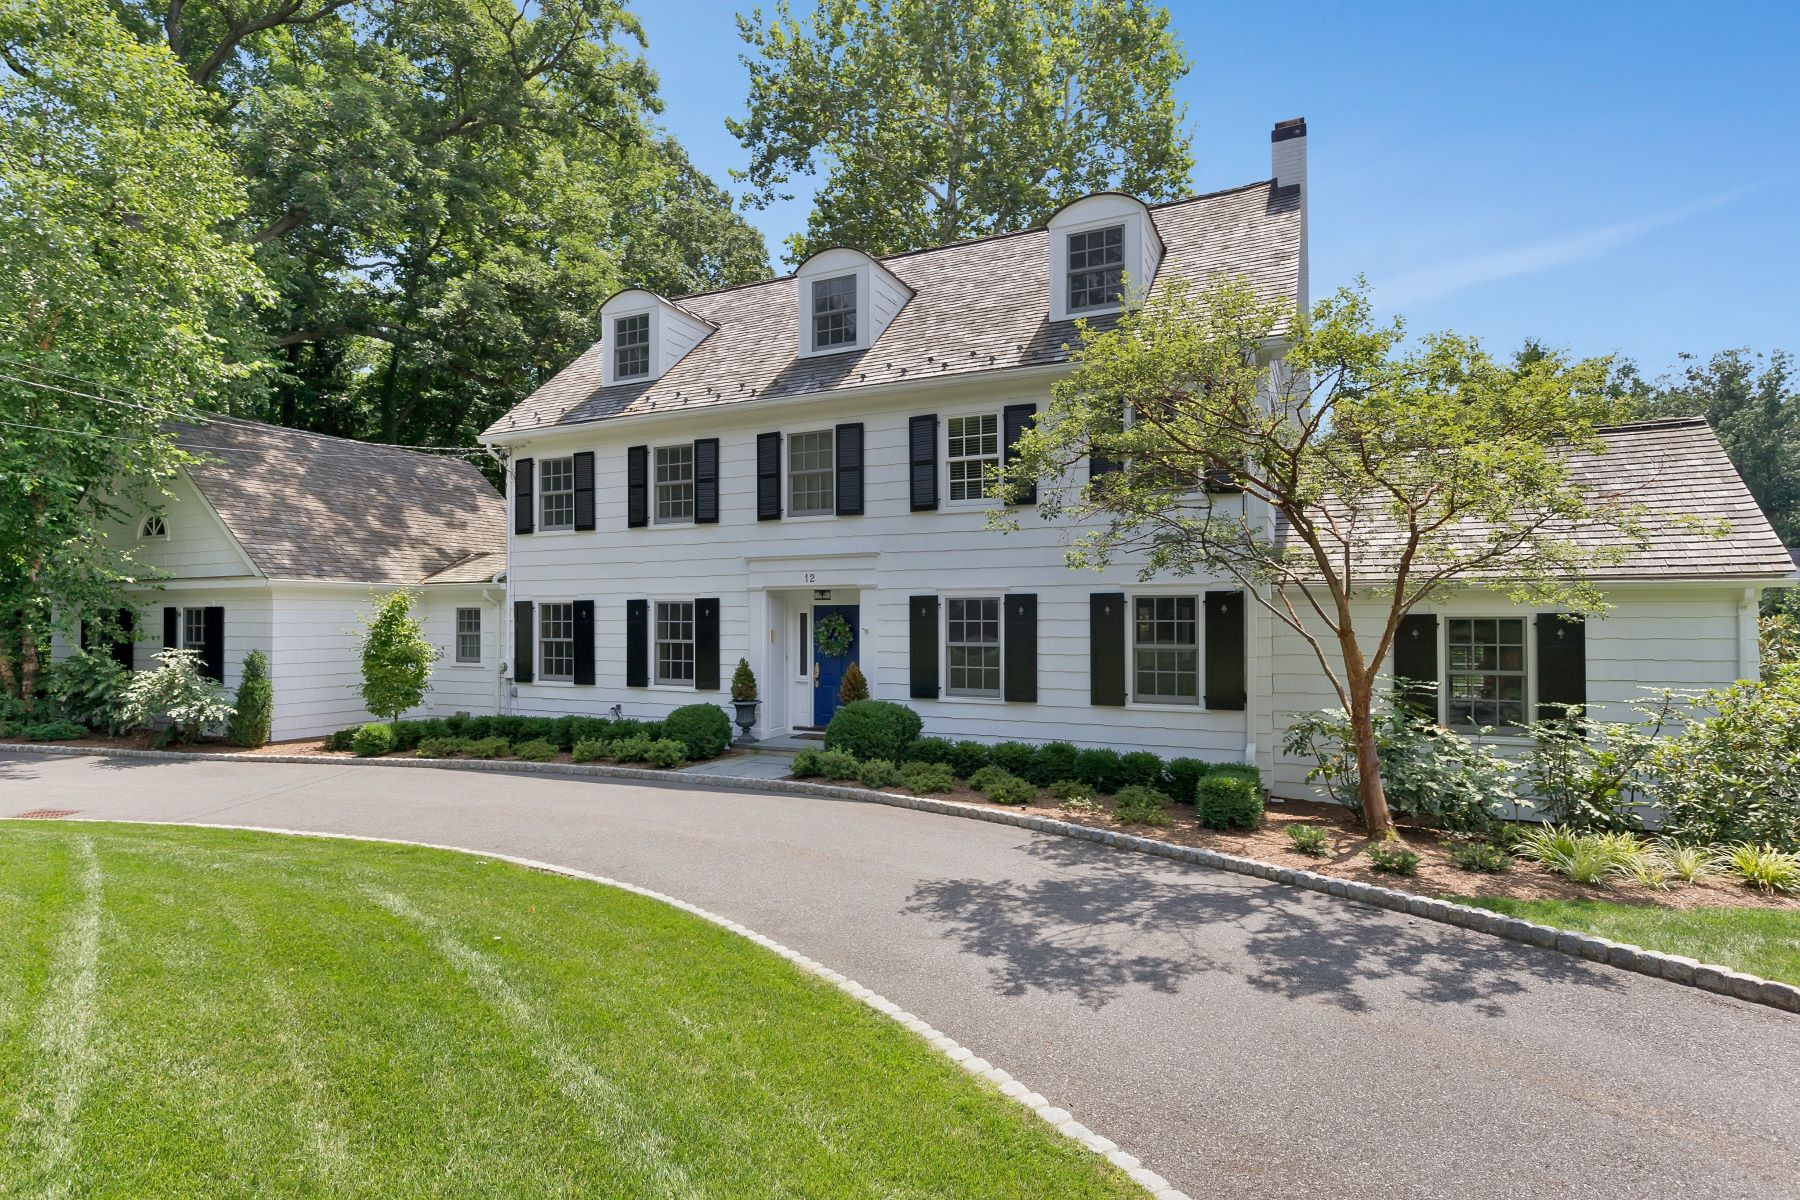 Single Family Home for Sale at Beautifully Renovated 12 East Lane, Short Hills, New Jersey 07078 United States